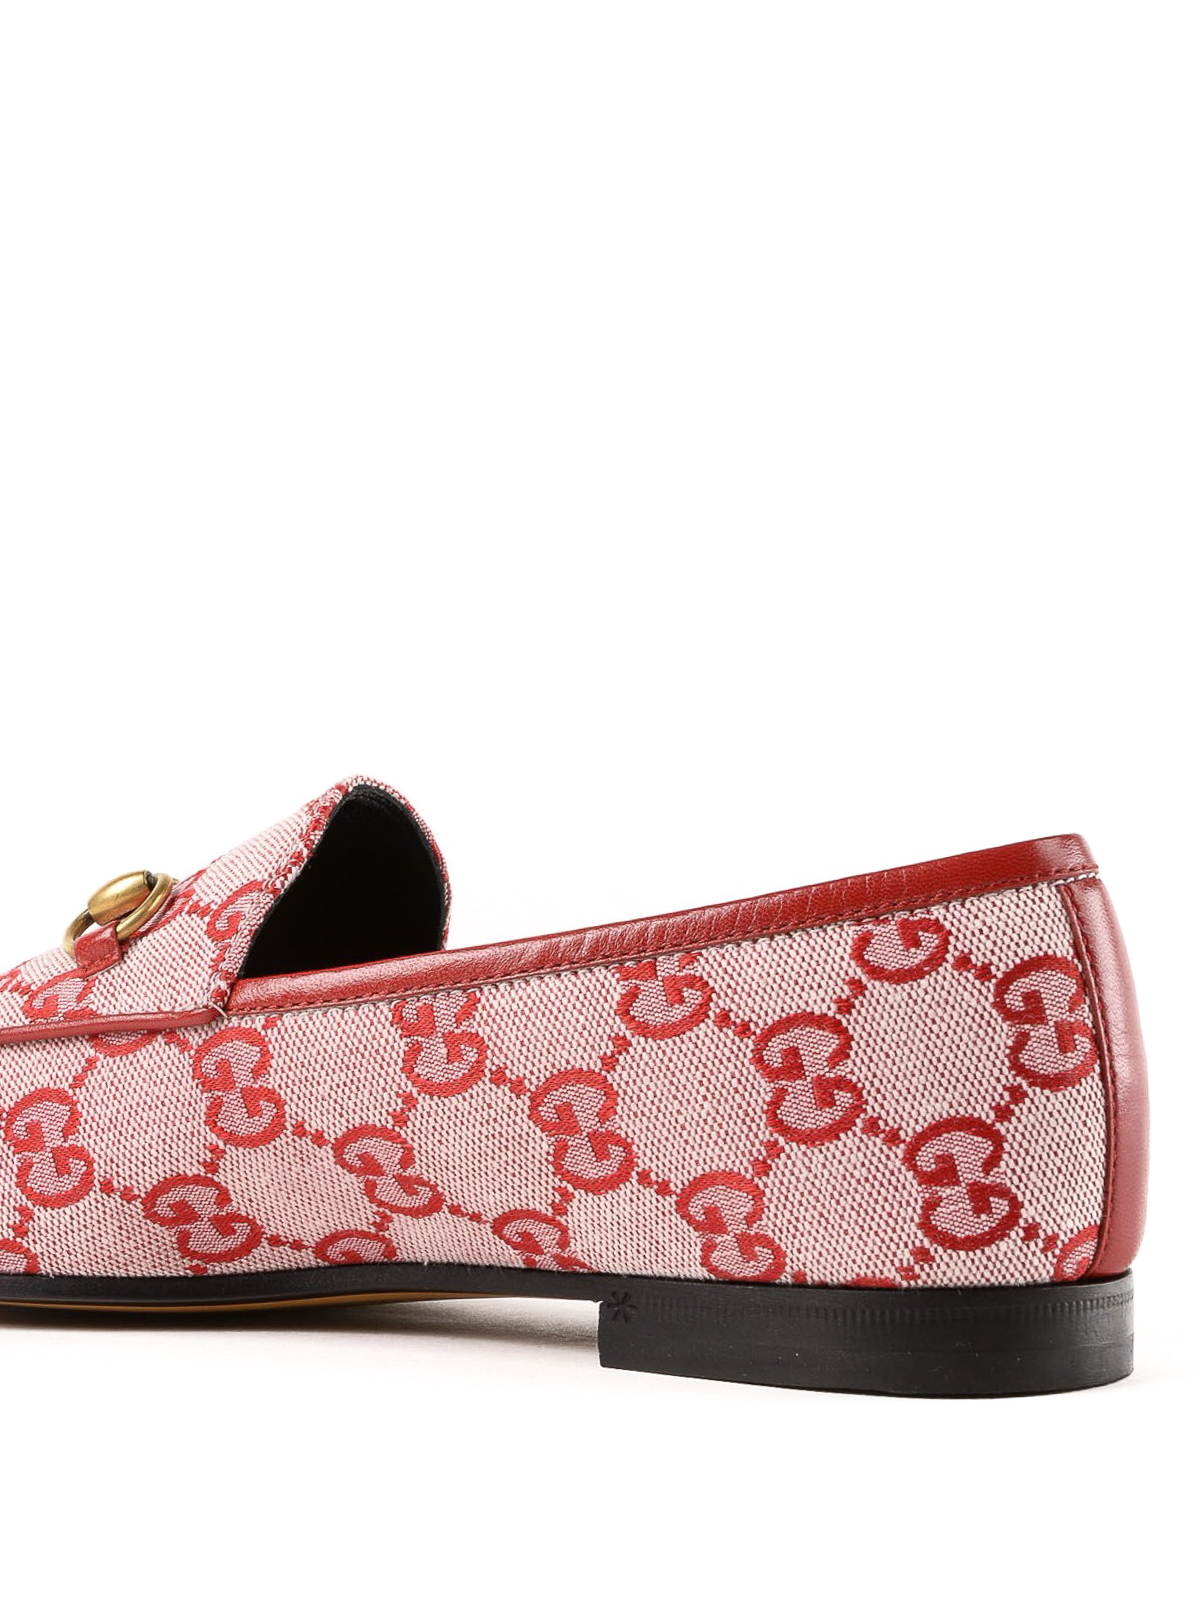 5f98076a5969 Gucci - Jordaan GG hibiscus red canvas loafer - Loafers & Slippers ...